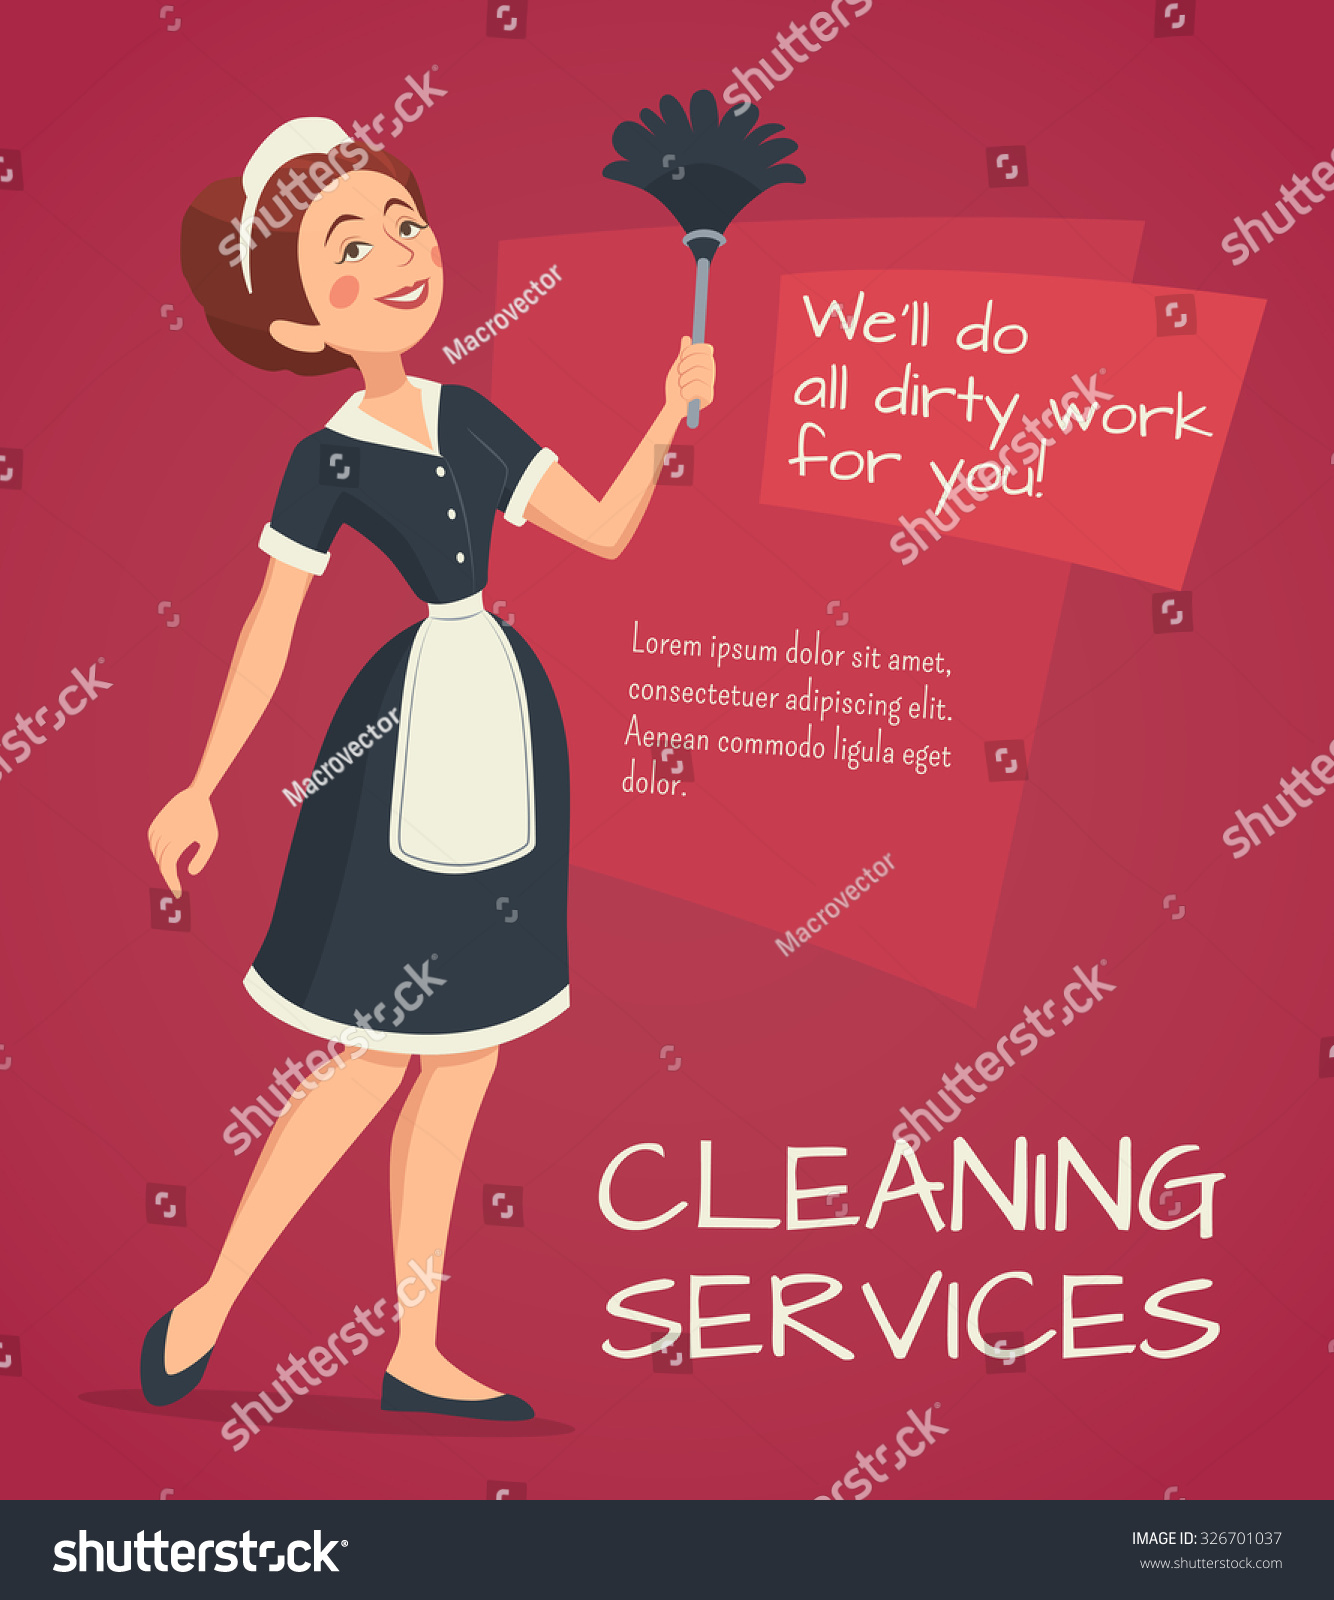 cleaning service advertisement cleaning w classic stock vector cleaning service advertisement cleaning w in classic maid dress cartoon vector illustration